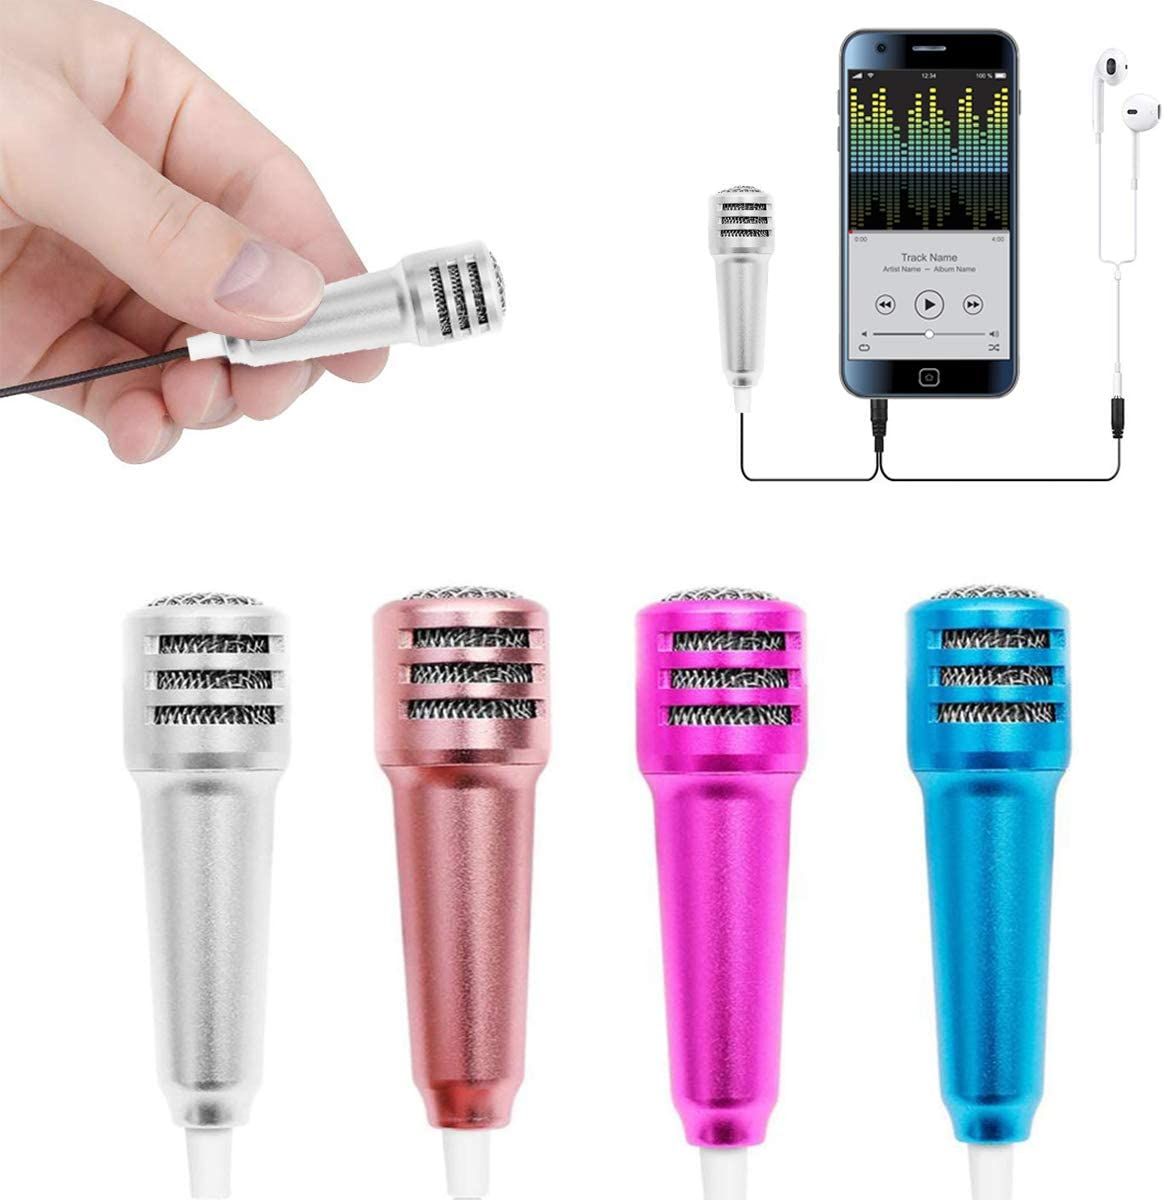 NCTP Mini Karaoke Microphone,Portable Vocal Instrument Microphone for Mobile Phone Laptop Notebook Apple iPhone Sumsung Android with Earphone (Siliver)